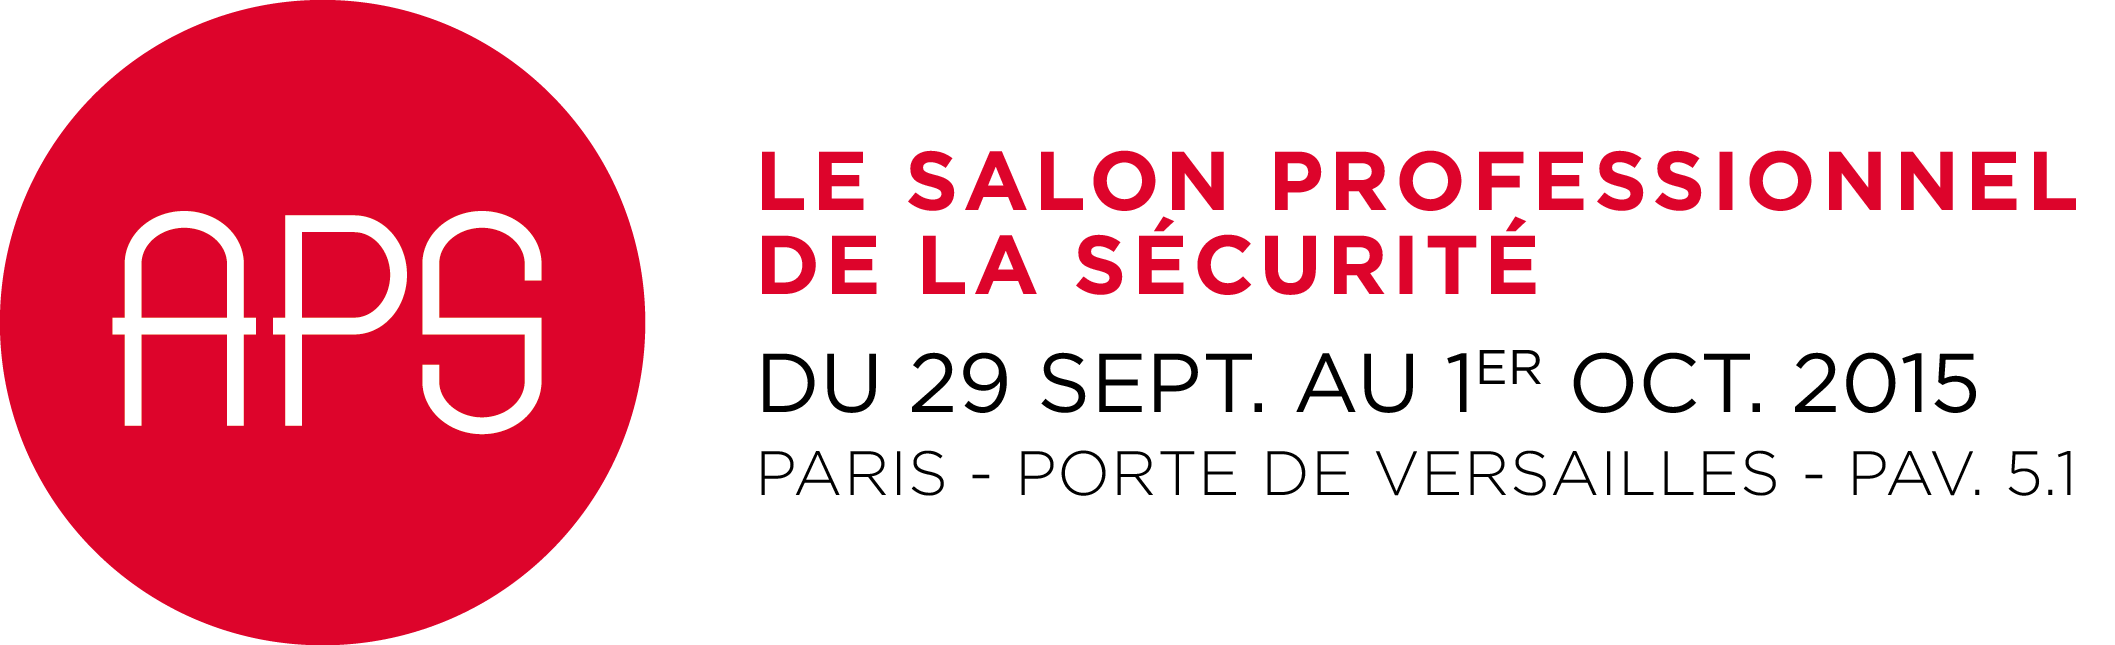 Aps le salon professionnel de la s curit - Salon de la securite ...